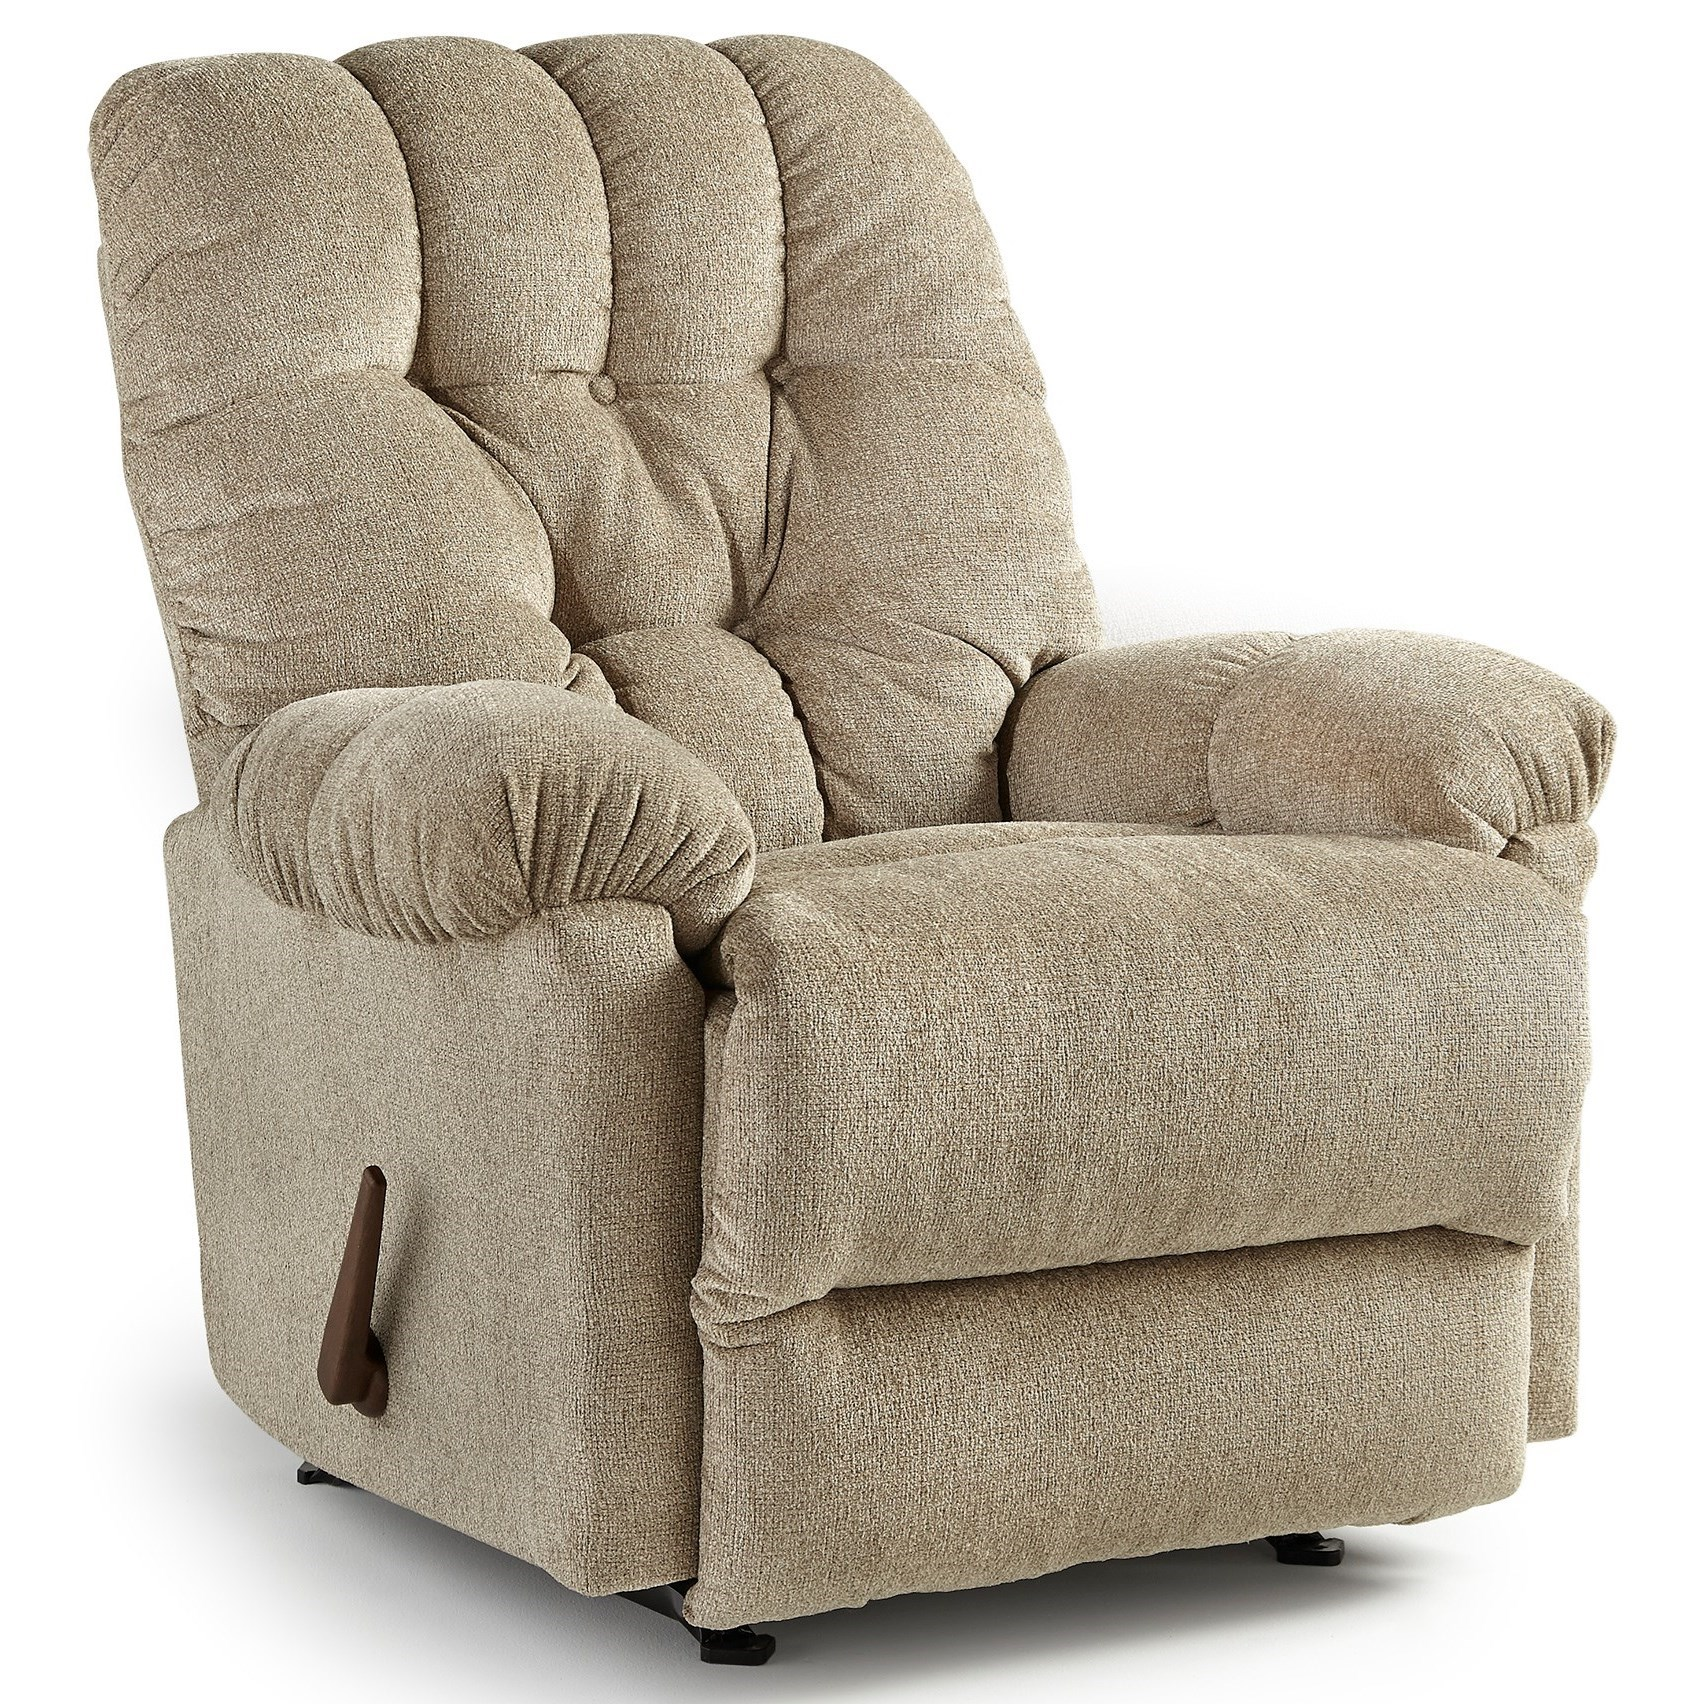 Best Home Furnishings Recliners - Medium Raider Swivel Rocker Recliner - Item Number: 9MW39